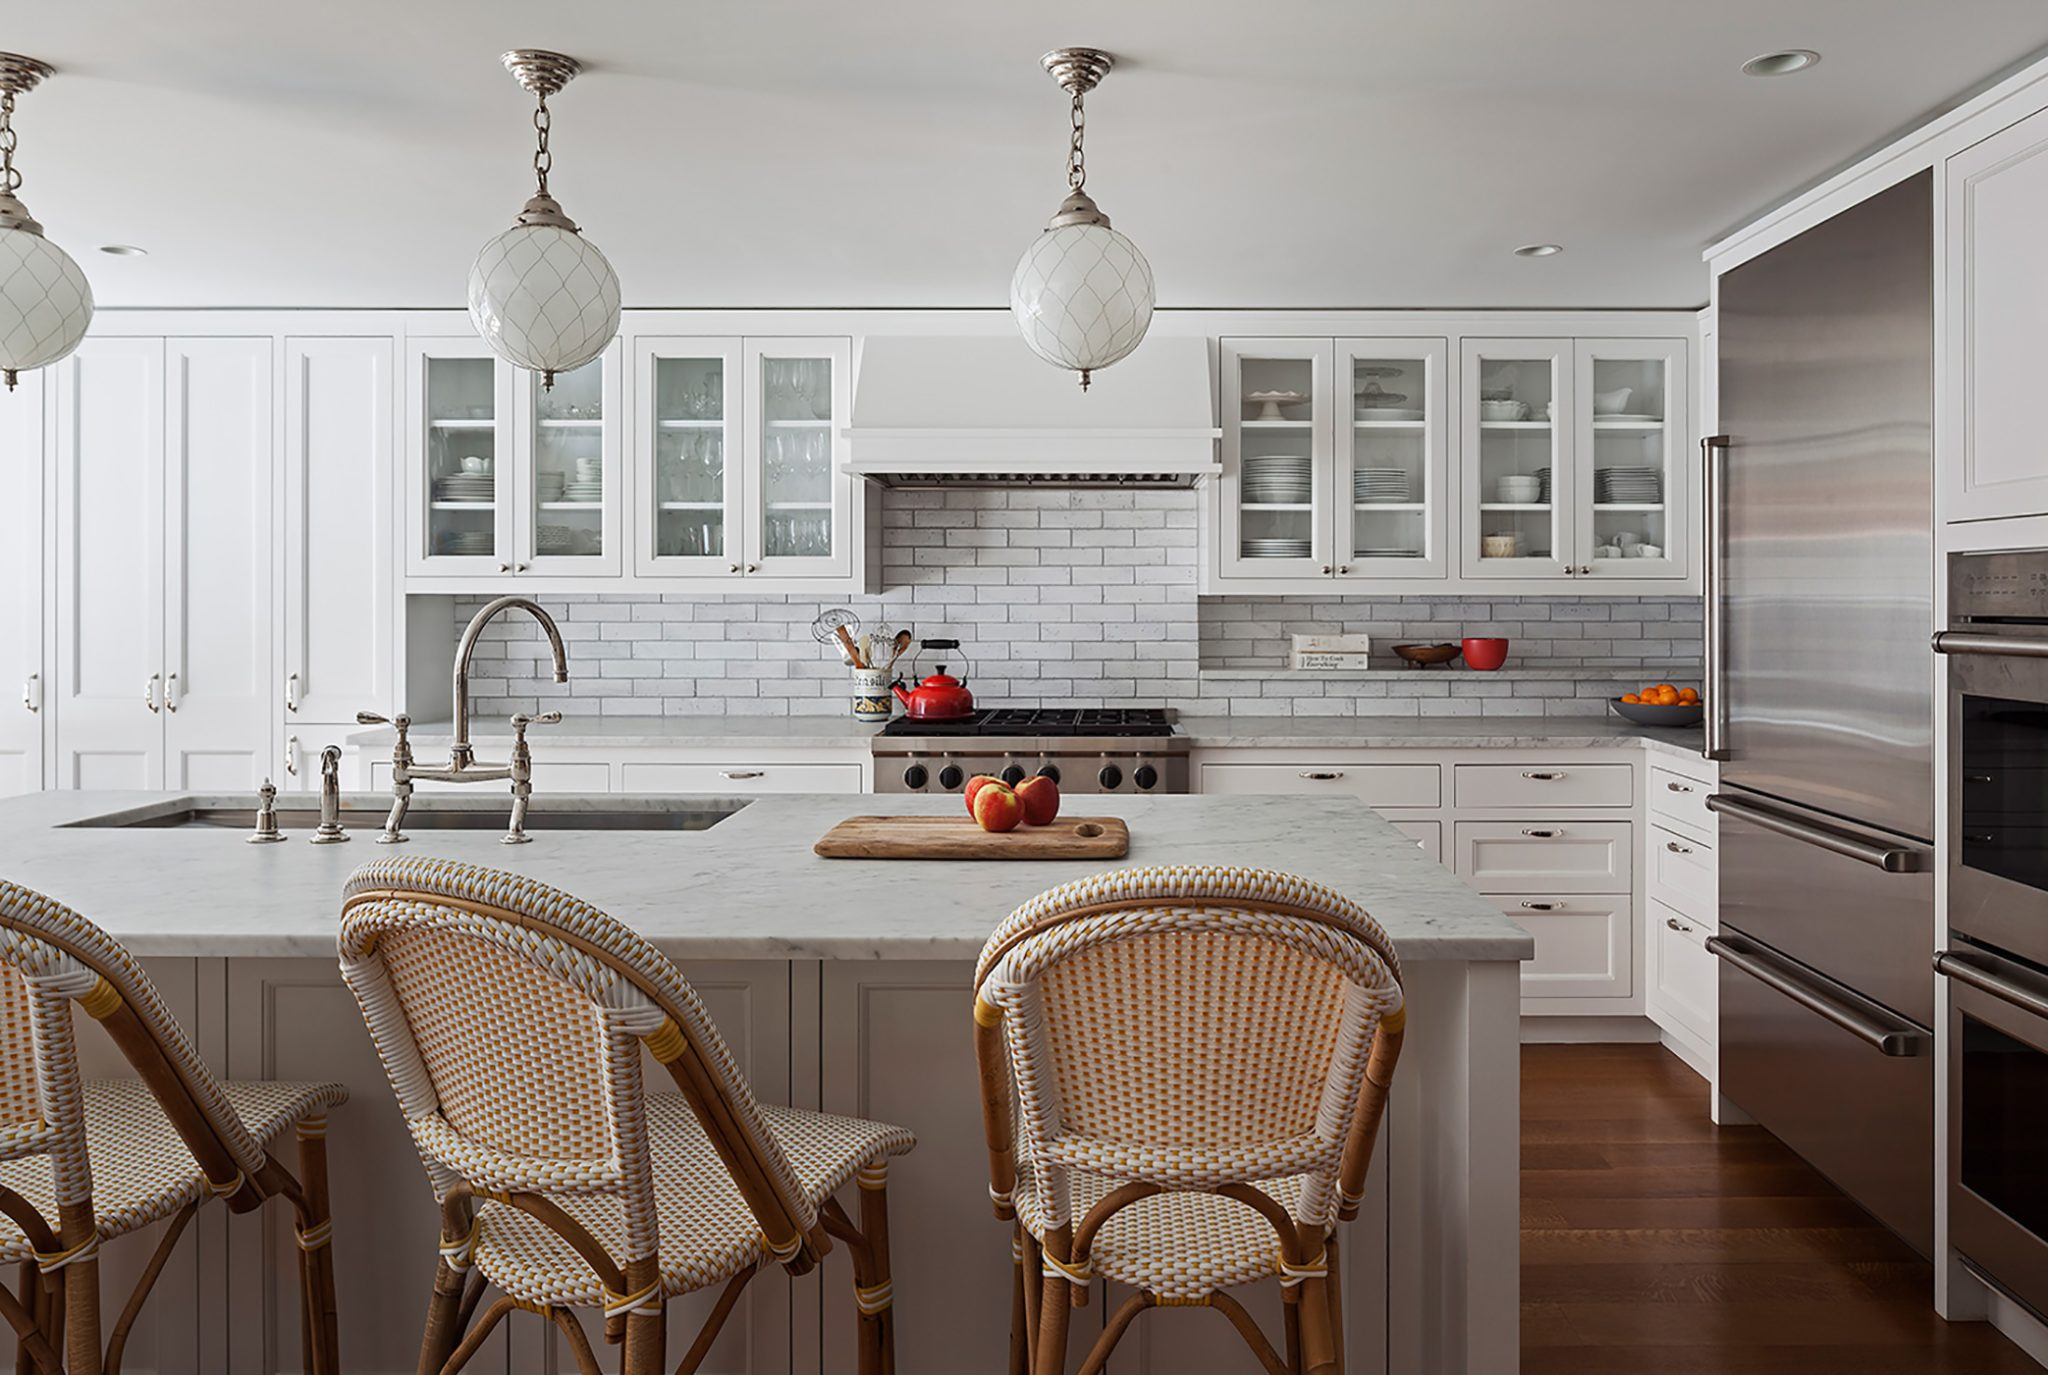 A classic rowhouse kitchen in Boerum Hill, Brooklyn, devised by CWB Architects